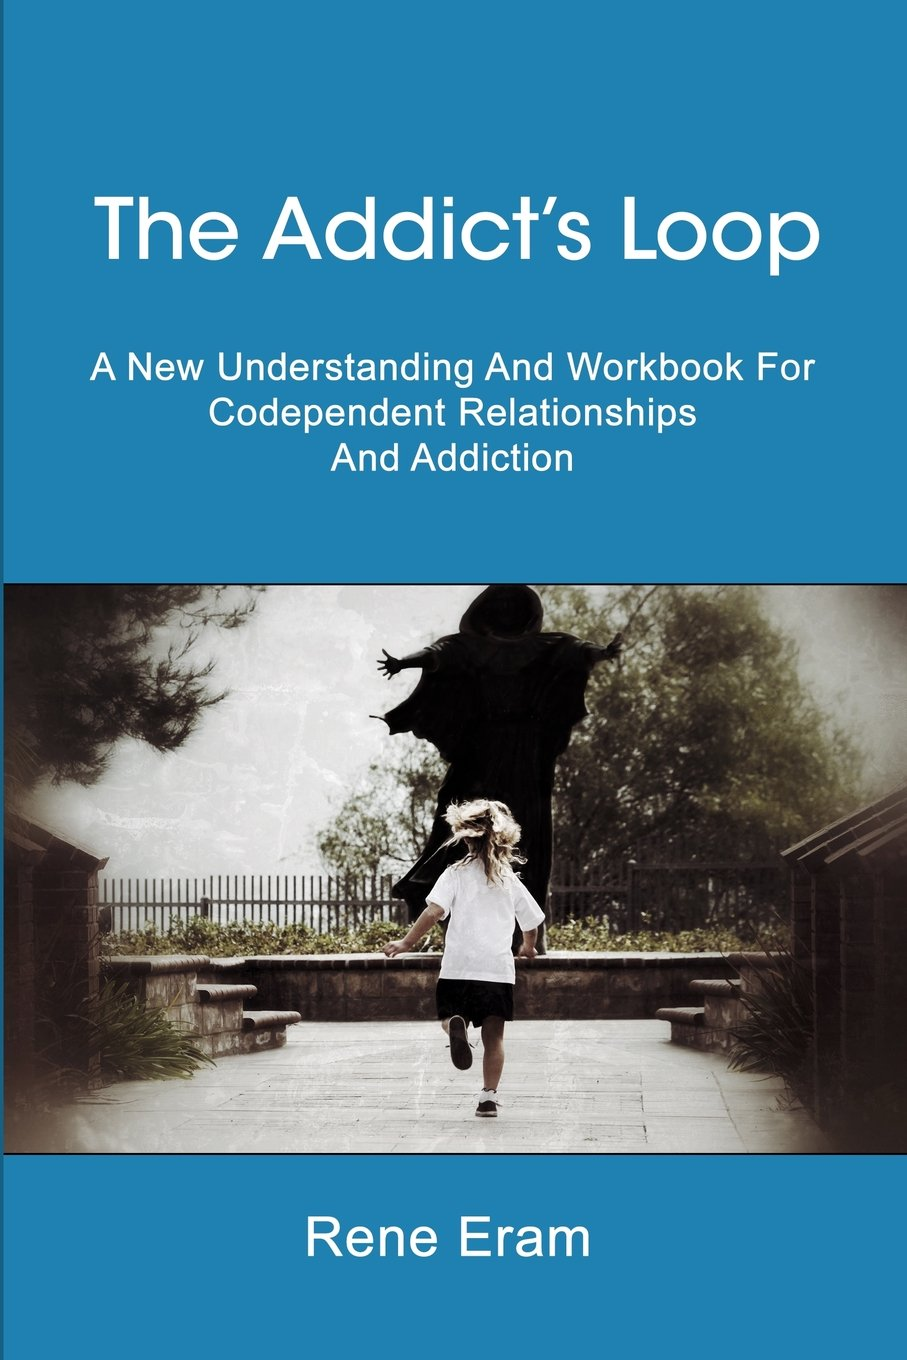 The Addict's Loop: A New Understanding And Workbook For Codependent  Relationships And Addiction: Rene Eram: 9781496049476: Amazon.com: Books